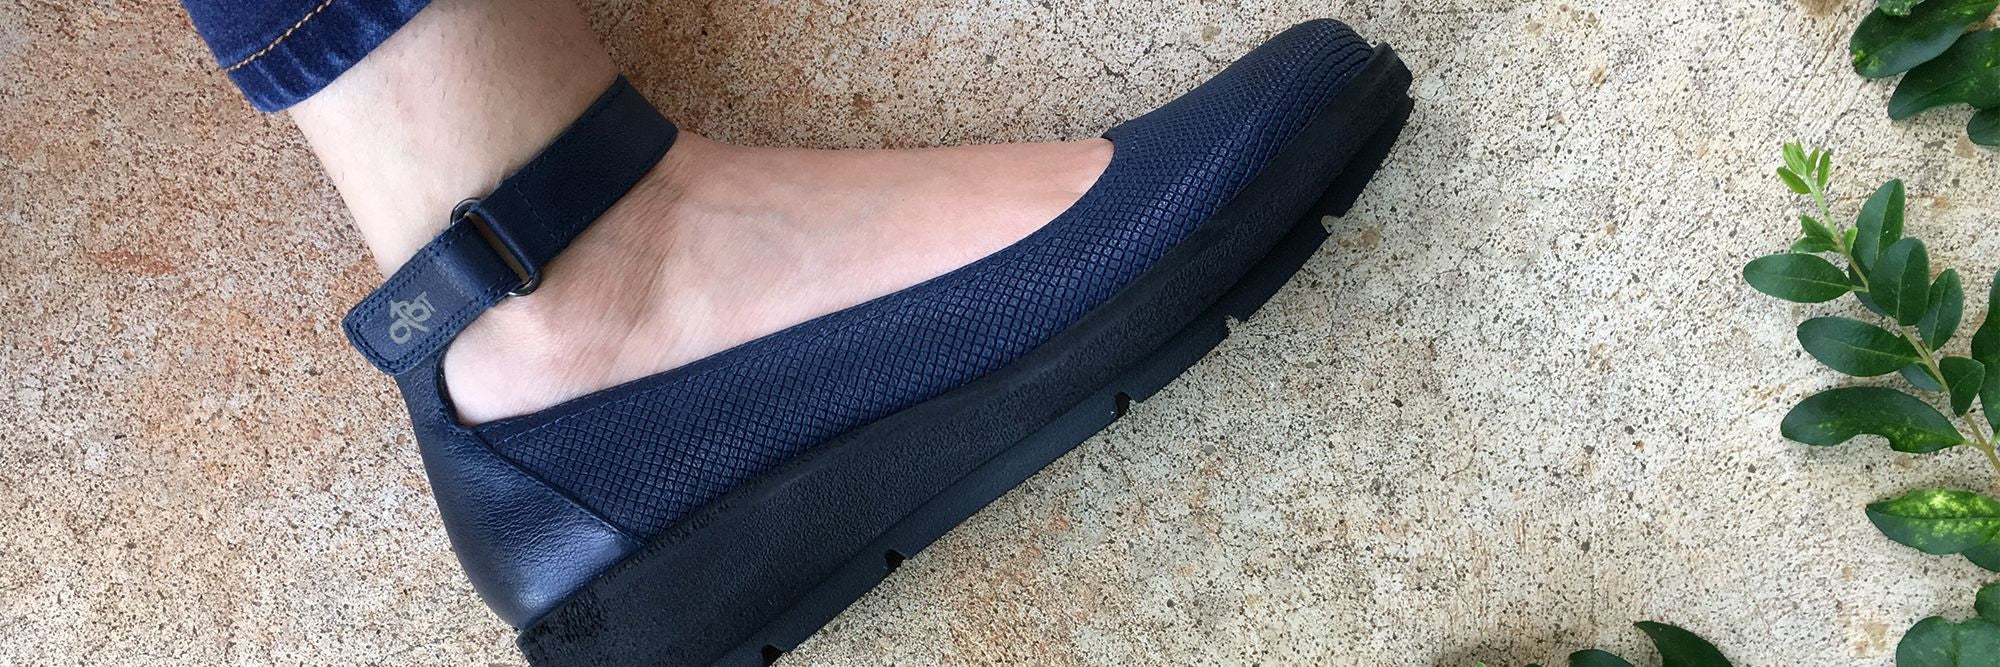 Want comfortable sporty flats for summer or fall? Check out OTBT's latest in comfortable shoes - the Scamper.